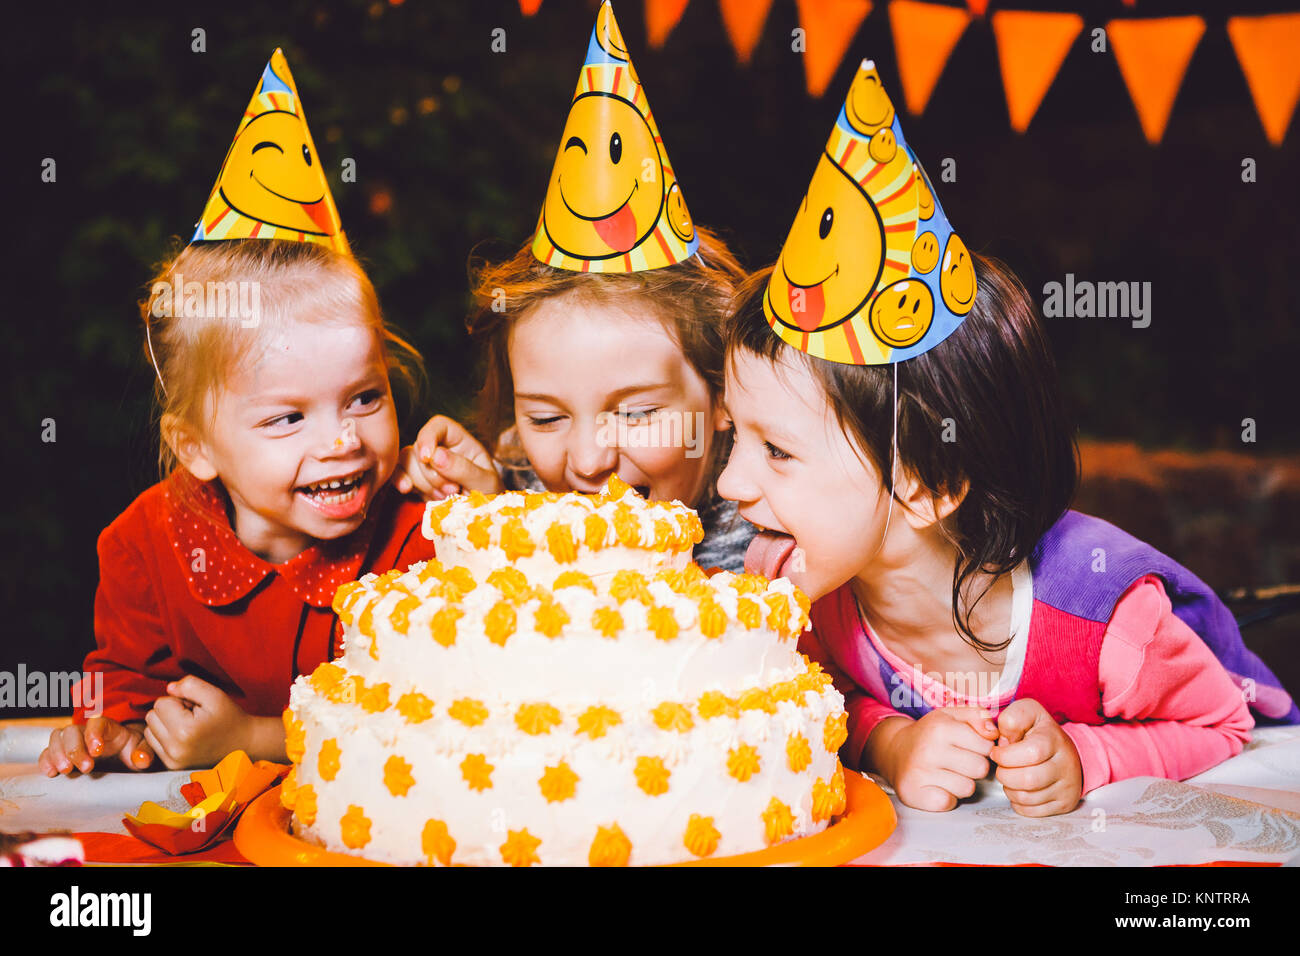 Children's birthday party. Three cheerful children girls at the table eating cake with their hands and smearing - Stock Image